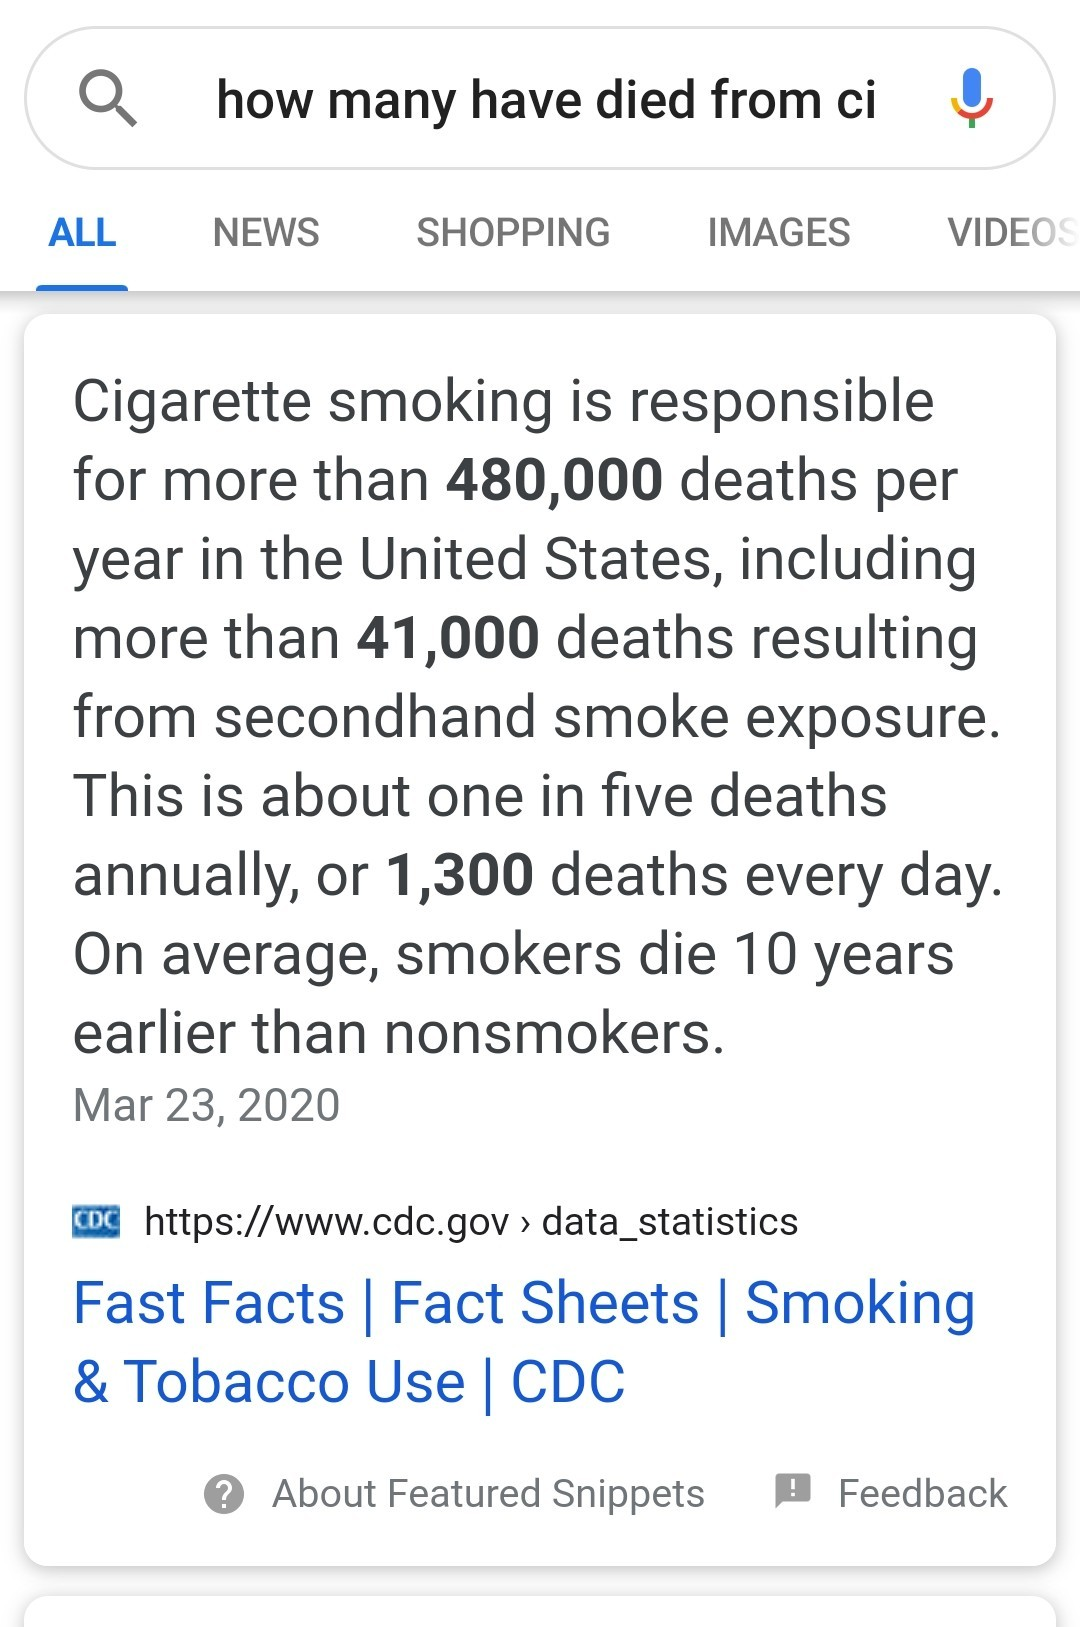 Smoking Cigarettes responsible for more deaths than Covid-19